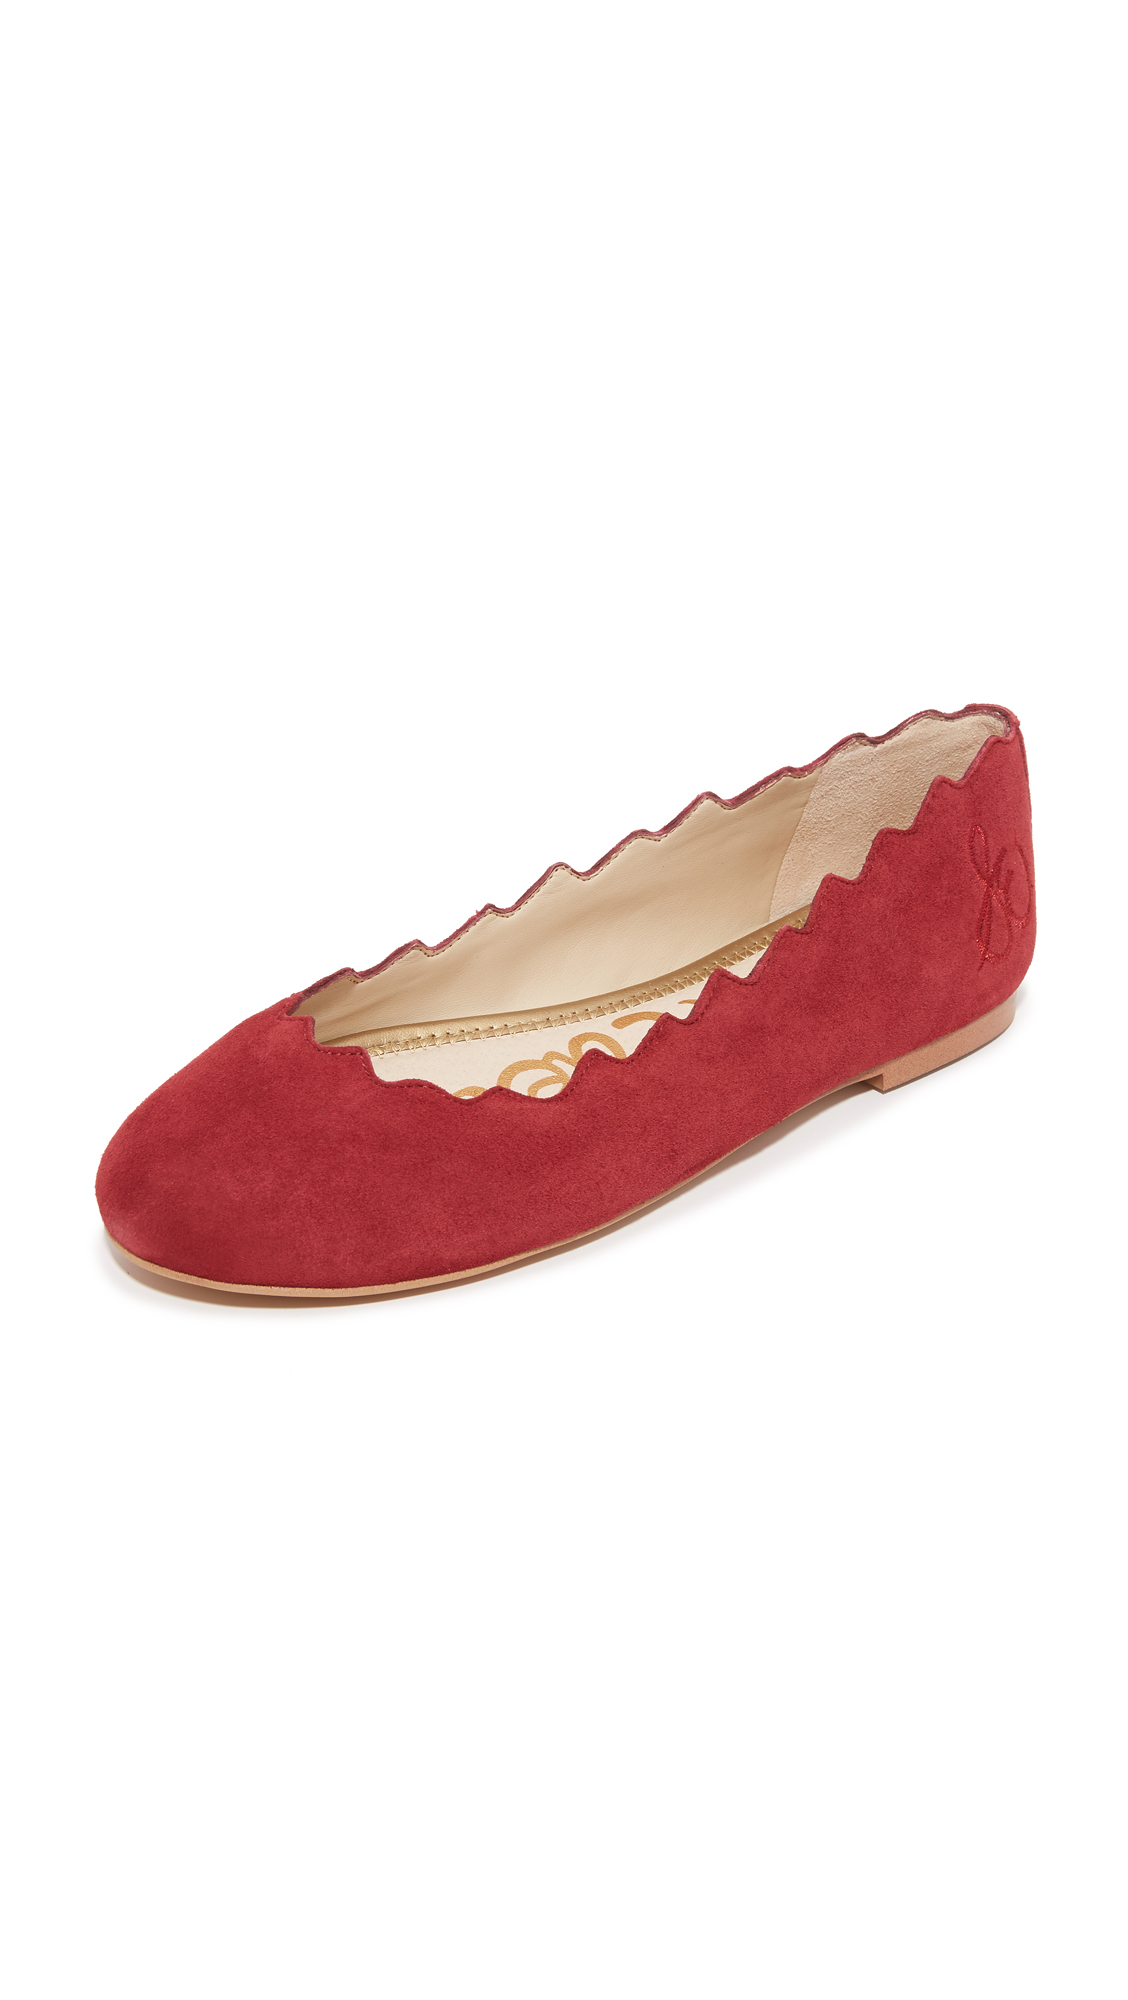 Red Tango Shoes Uk